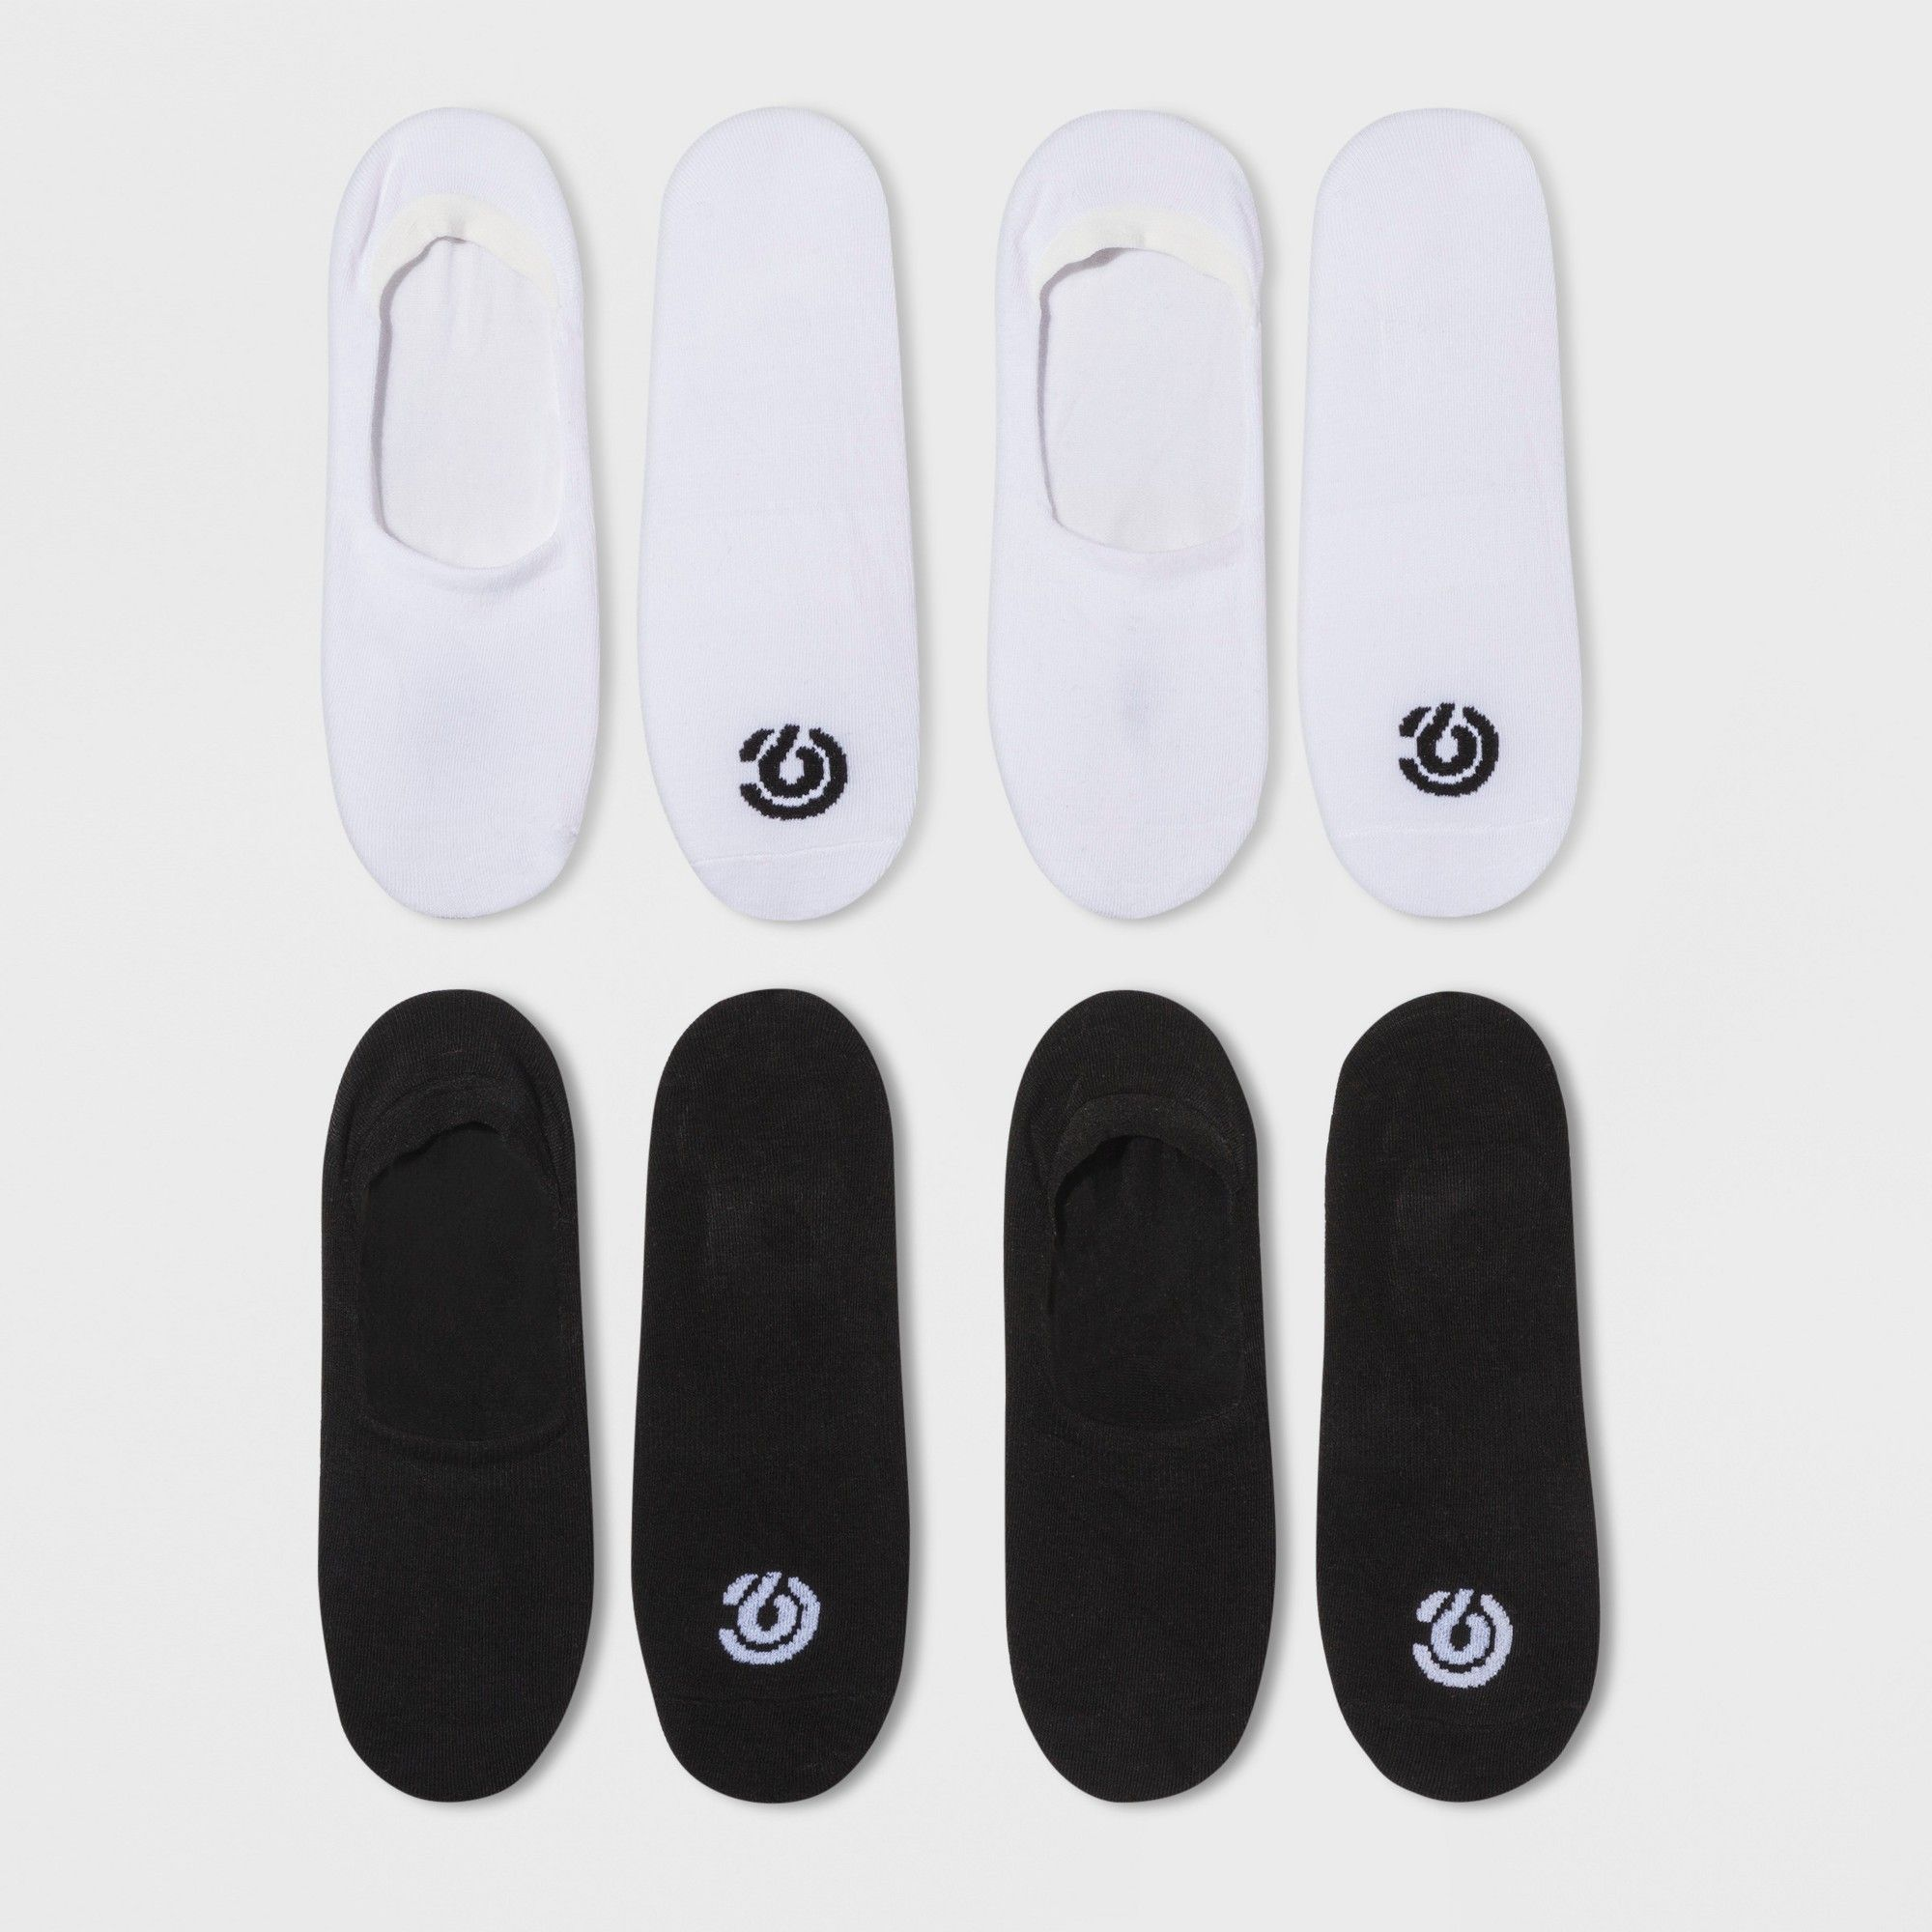 7ecee46aee1 Women s Training Invisible Liner Extended Size Athletic Socks - C9 Champion  Black White 8-12